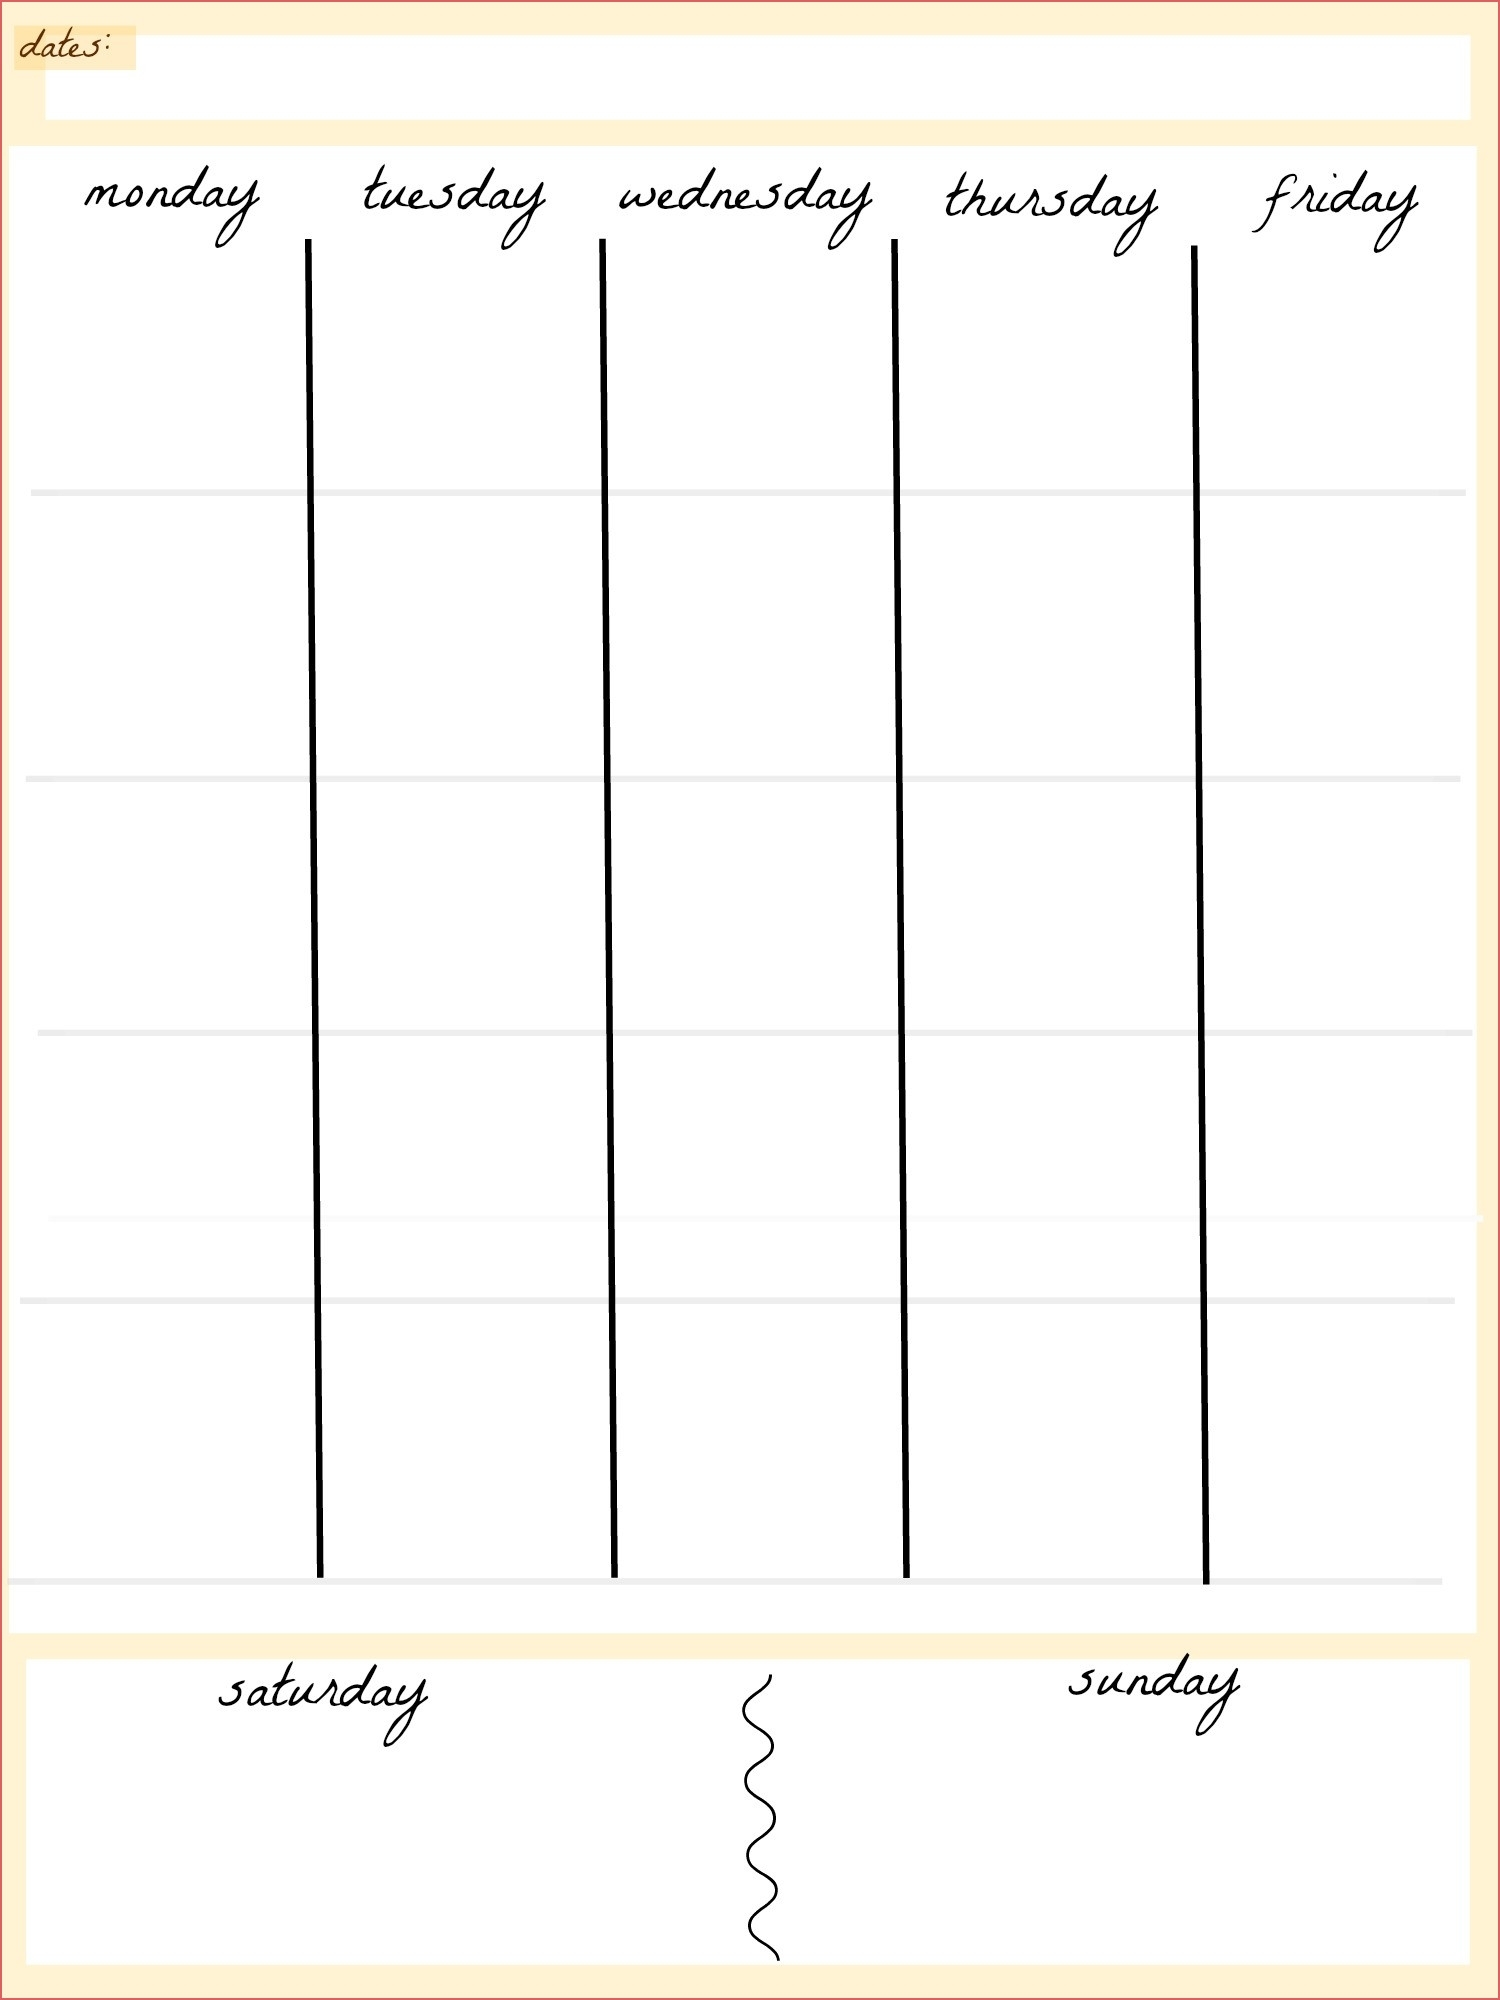 Day Calendar Printable Blank 5 Day Calendar Printable Calendar pertaining to Printable Calendar Day By Day